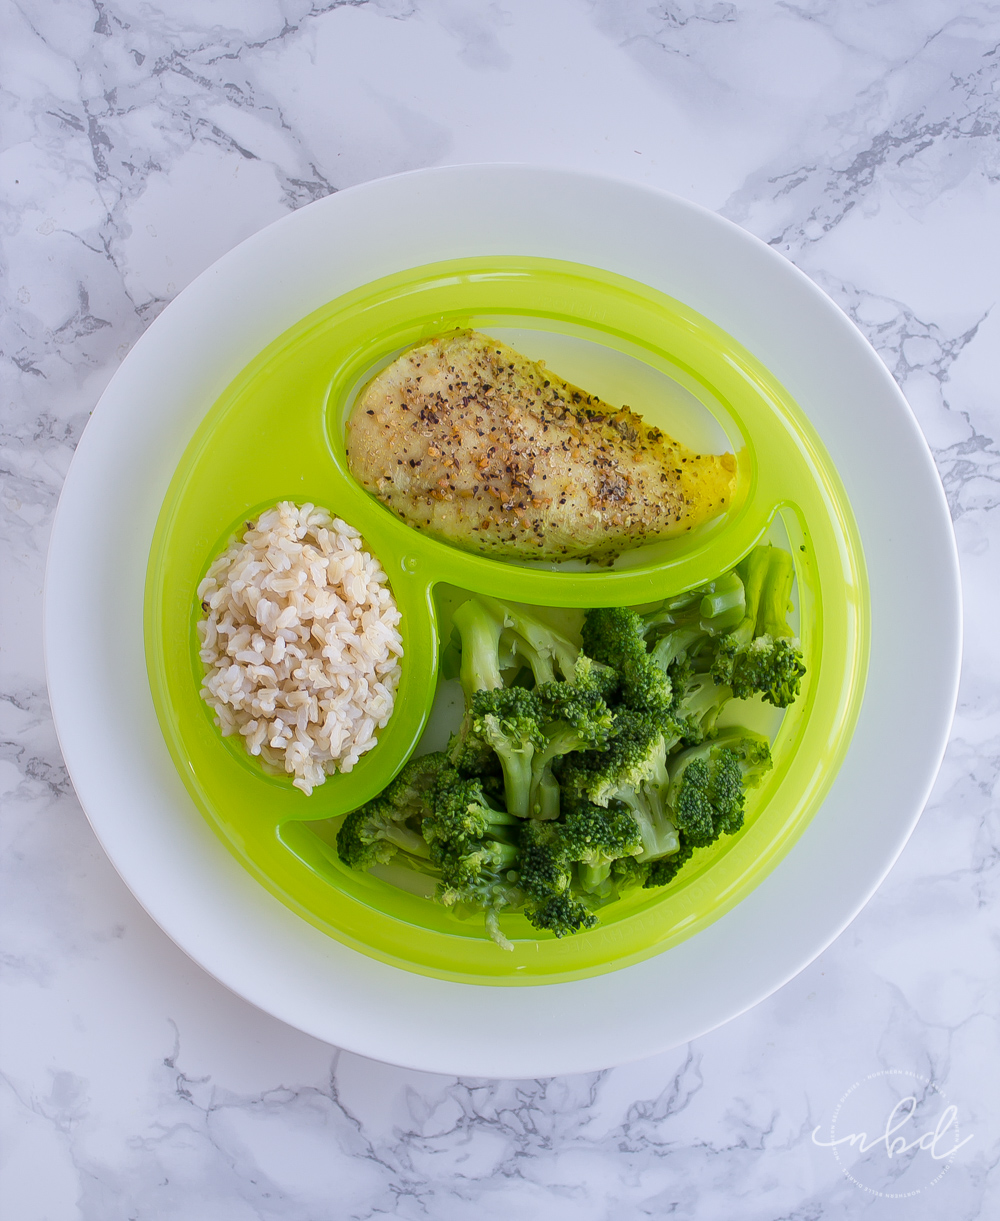 NutriBullet LEAN portion-control guide on plate